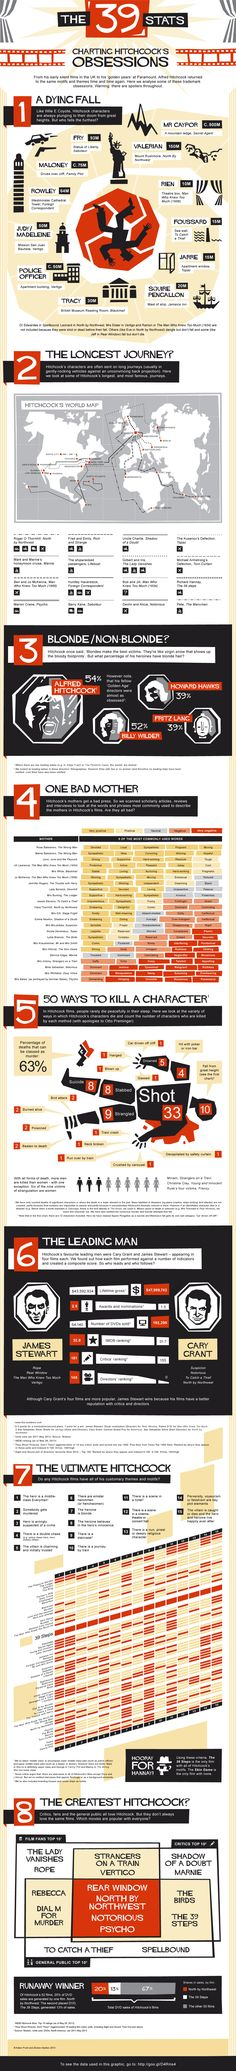 The 39 Stats: Charting Hitchcock's Obsessions [Infographic]